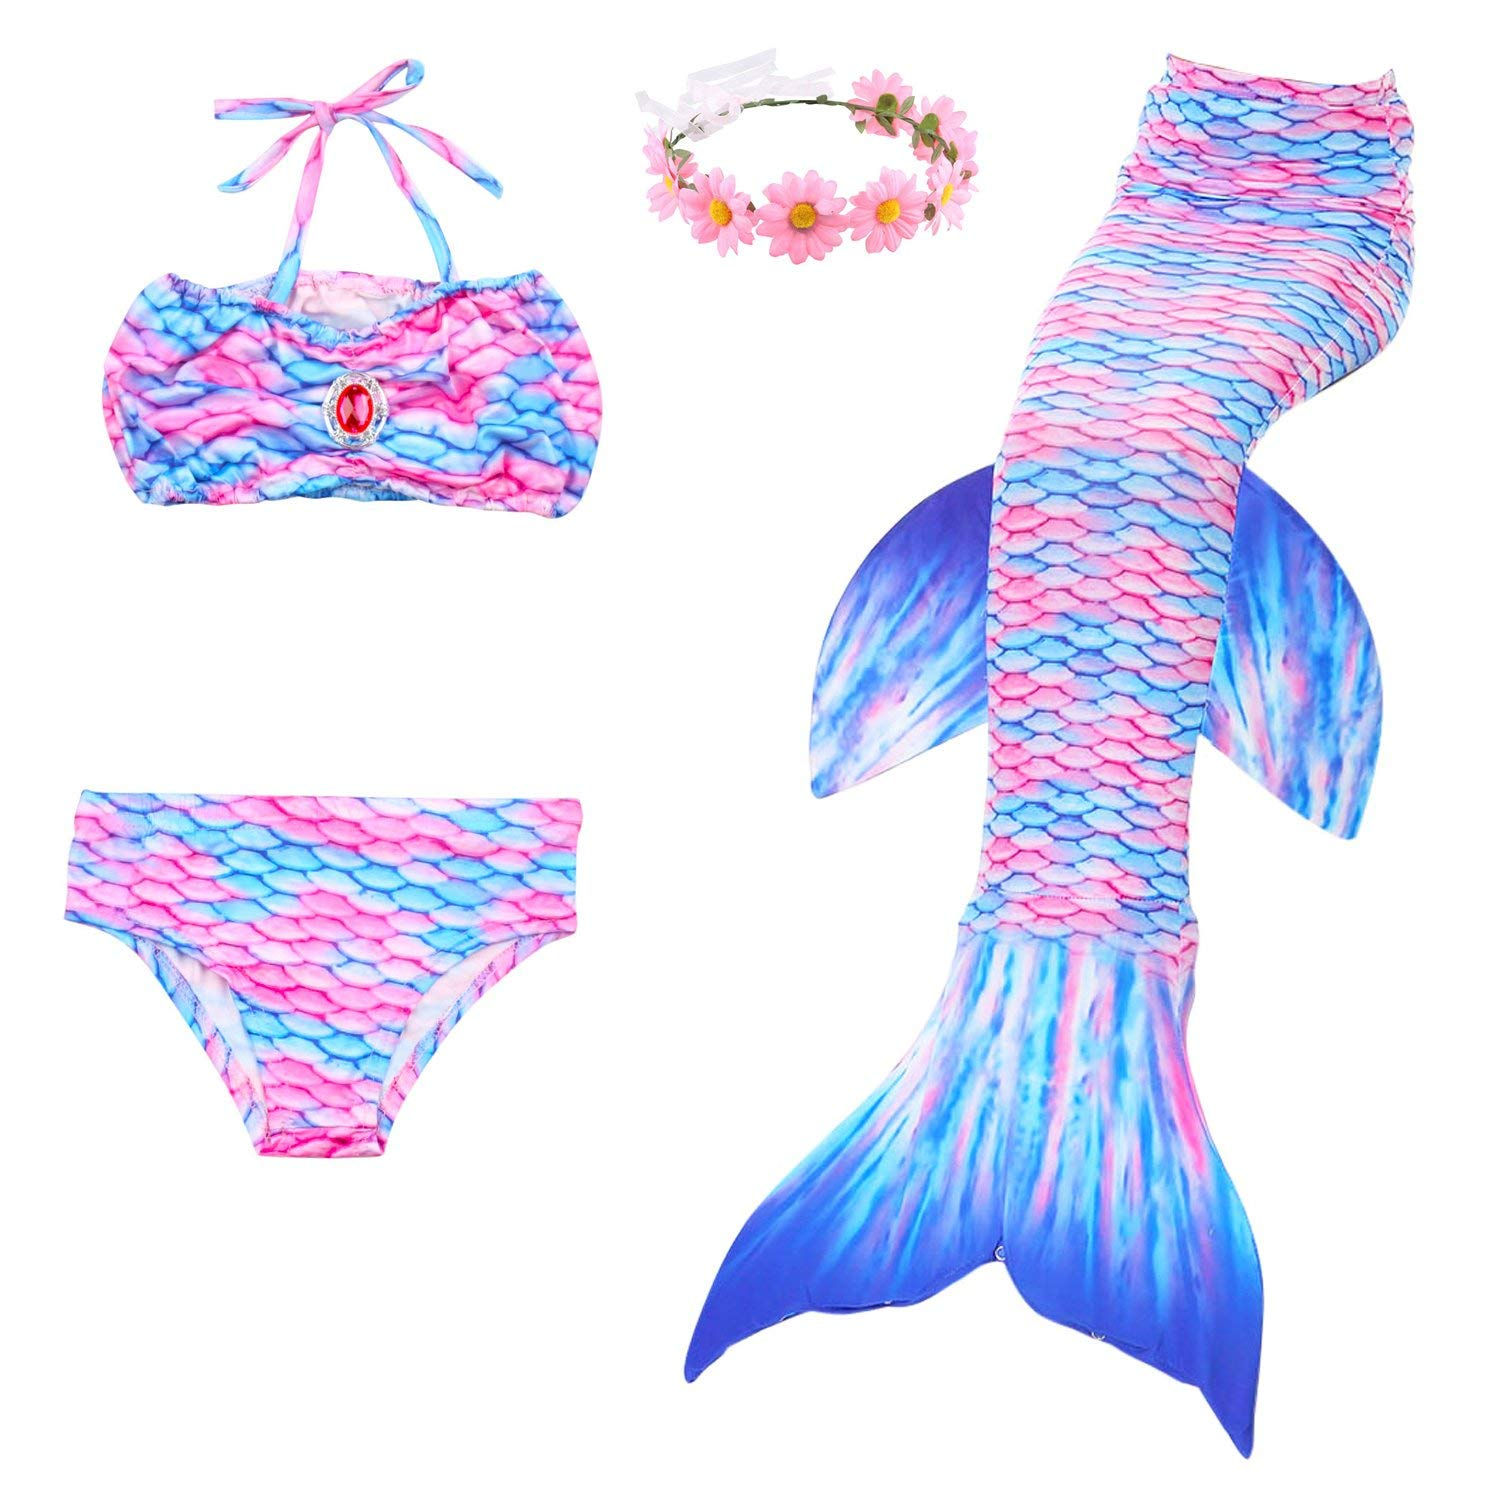 fa5b5a8e5e4db 3 Piece Mermaid Tail Swimsuit with Removable Fin and Included Flower  Garland Headband